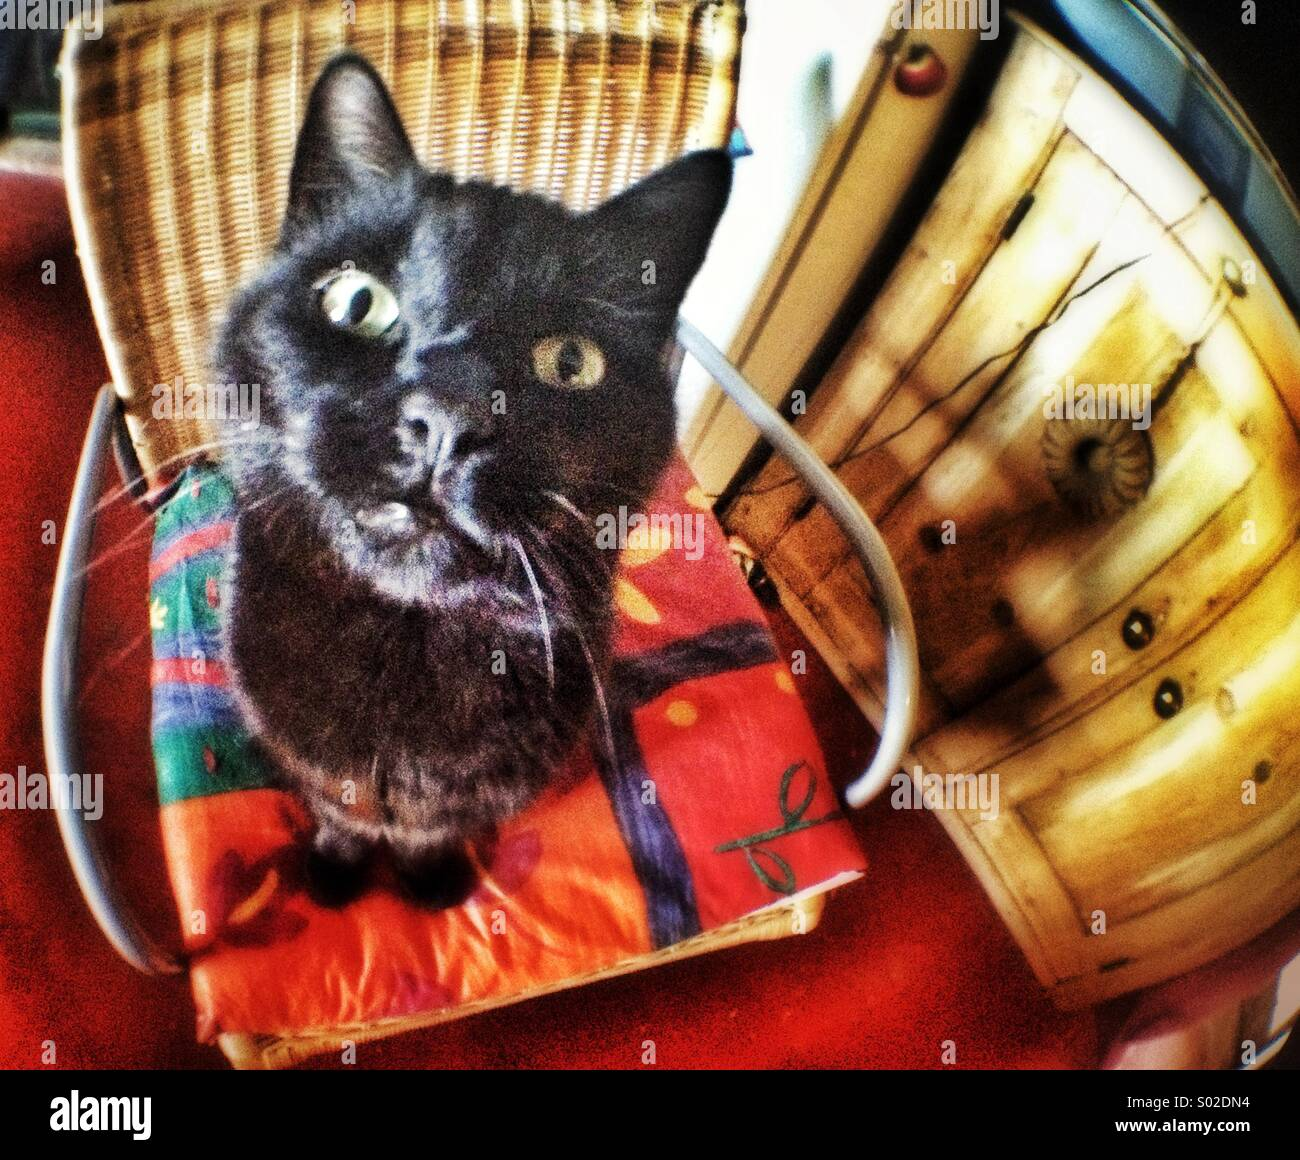 Black cat on chair - Stock Image